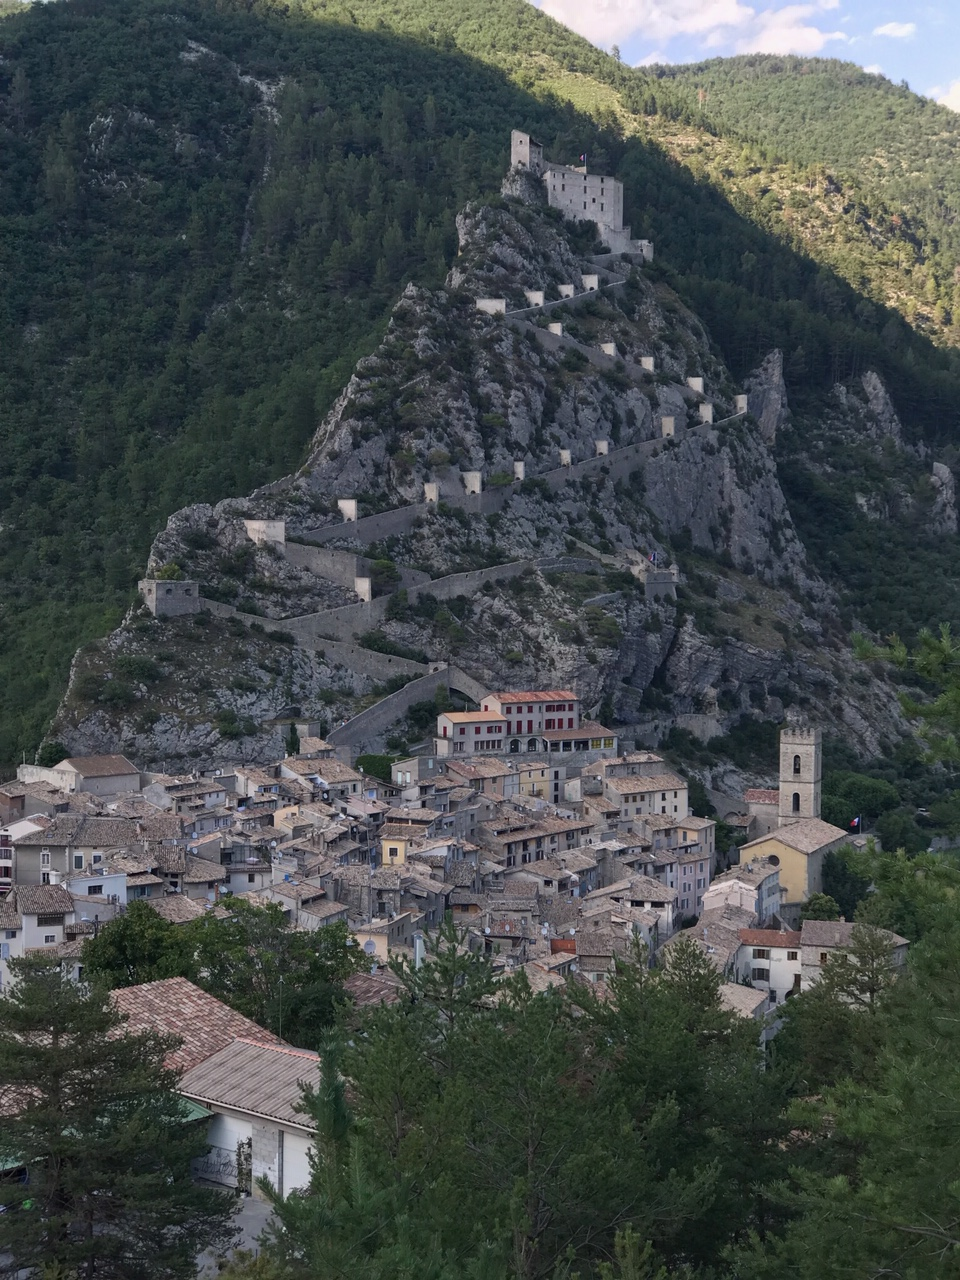 Entrevaux France